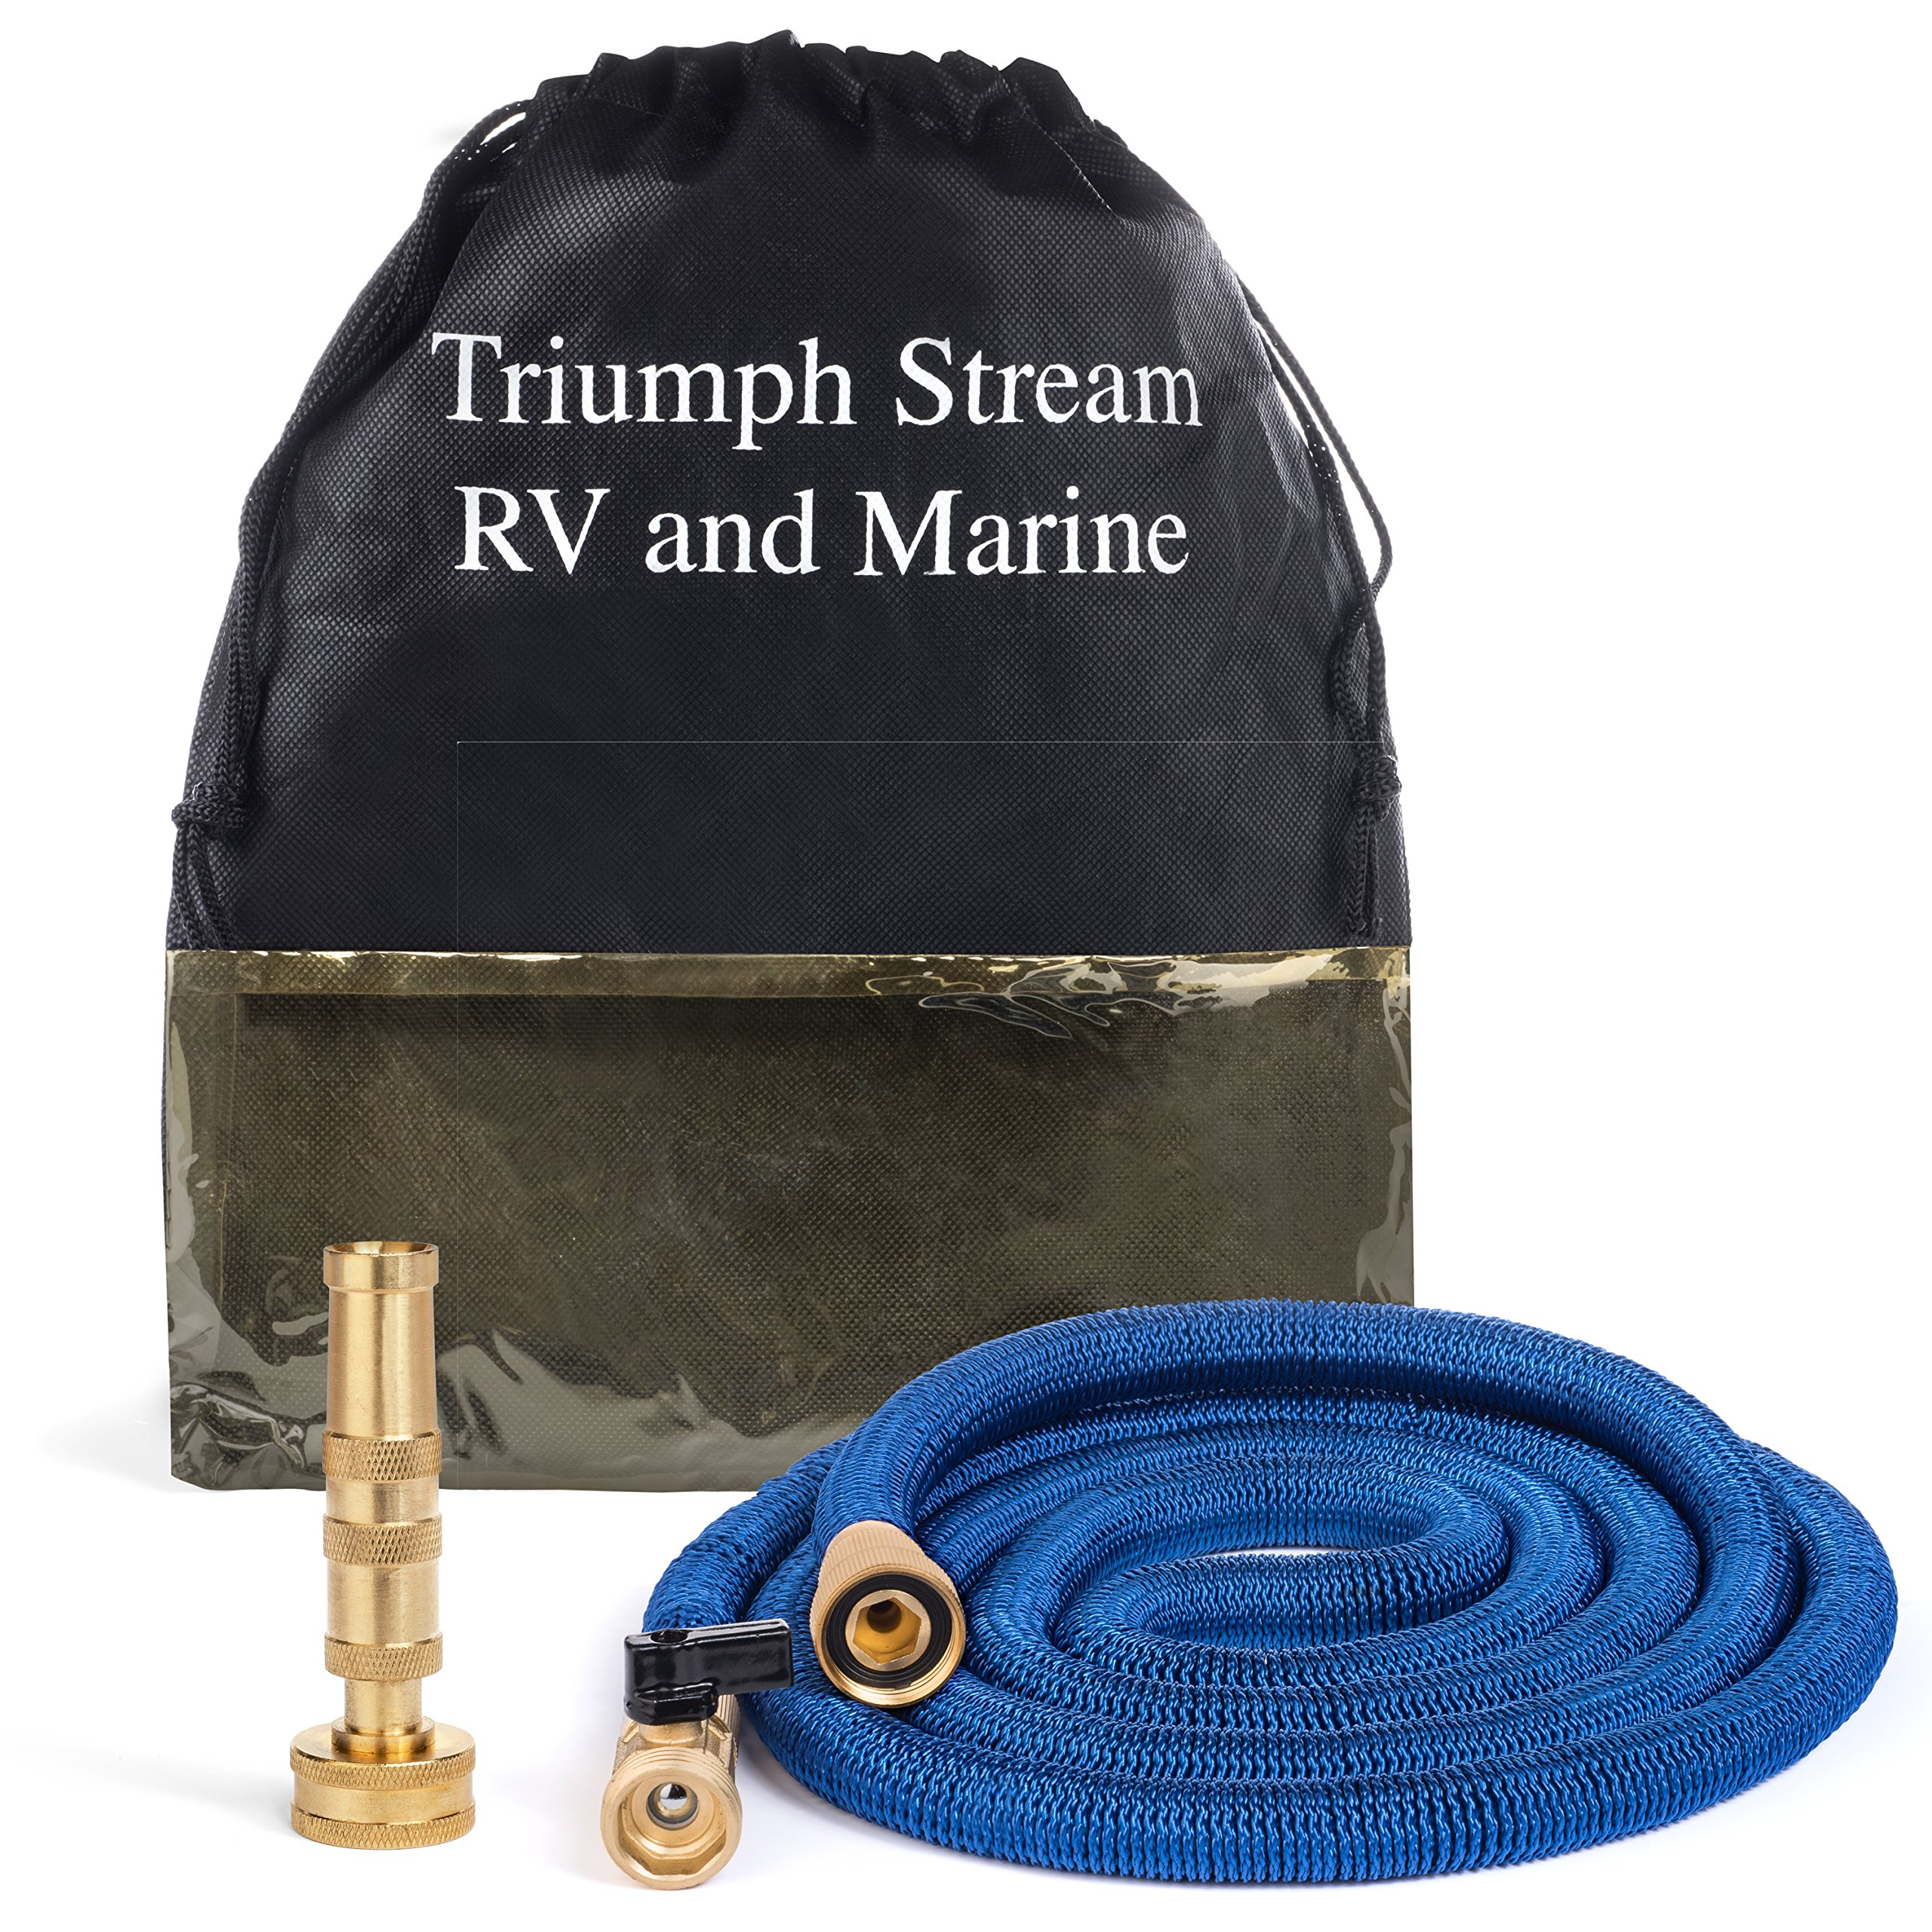 Marine Boat 5th Wheel and RV Water Hose | Expands 8 to 25 ft | Frustration Free! - No Kinks, Coiling or Scuffs | Perfect Washdown Hose, Super Space Saver w/Storage Bag | Leak Free Guarantee